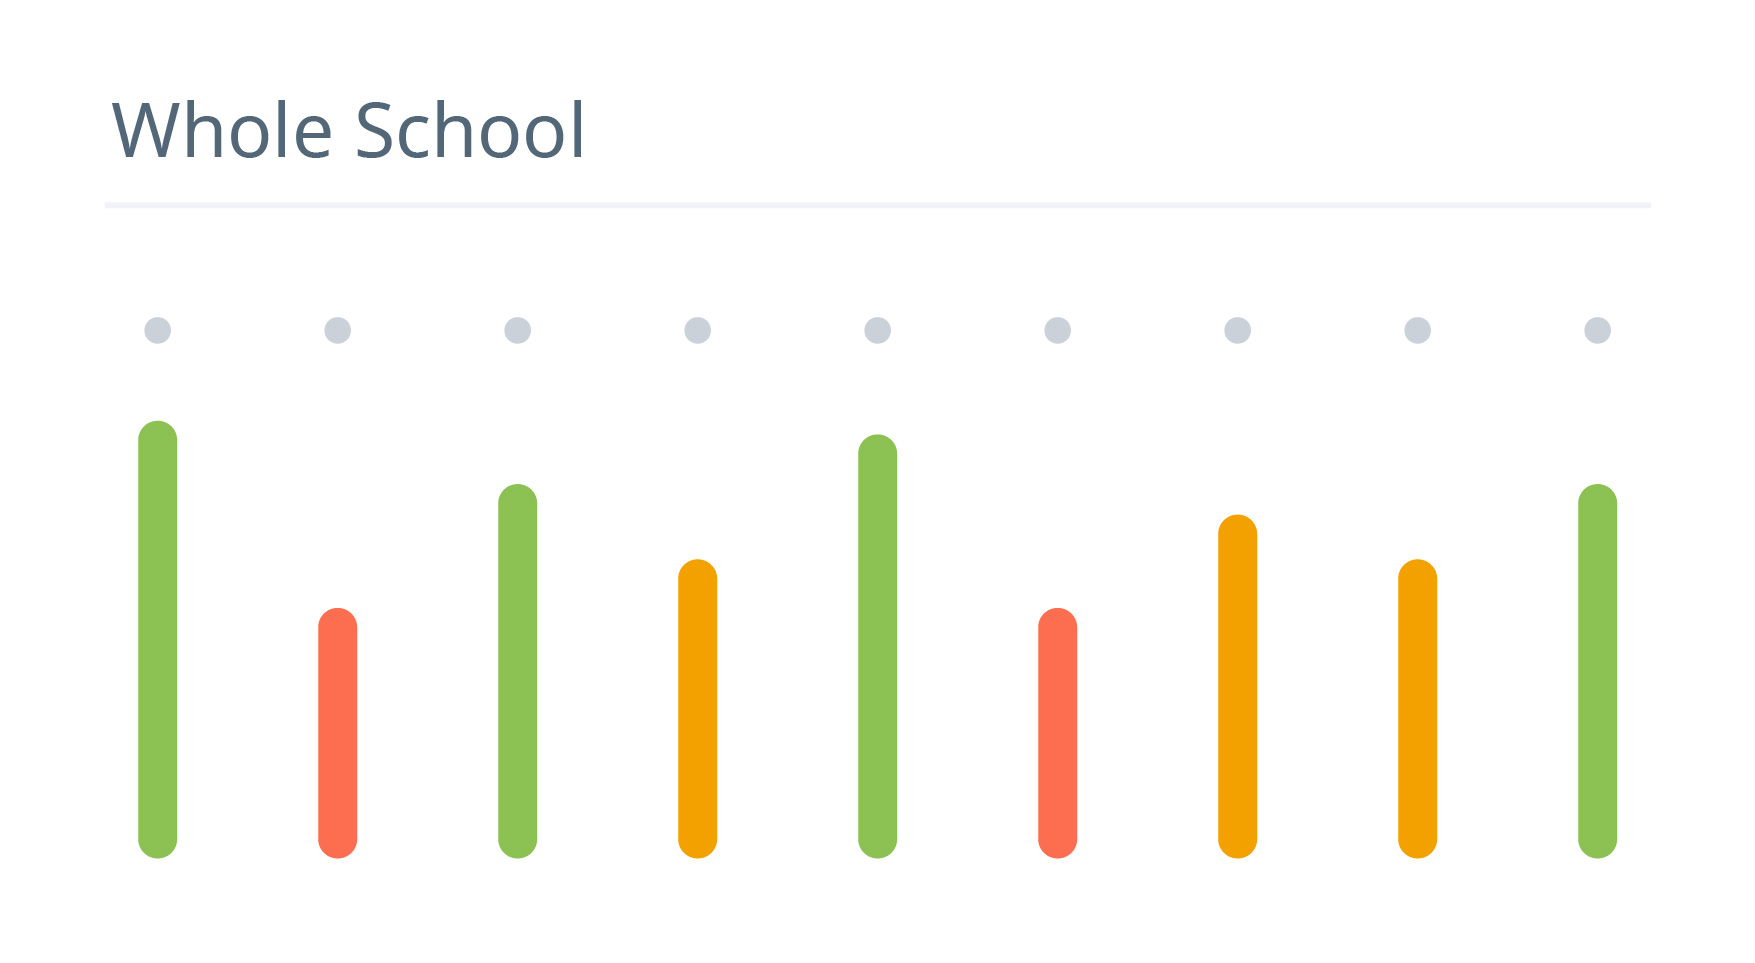 Satchel Pulse provides school insights and trend lines on key areas in the school district for school improvement.